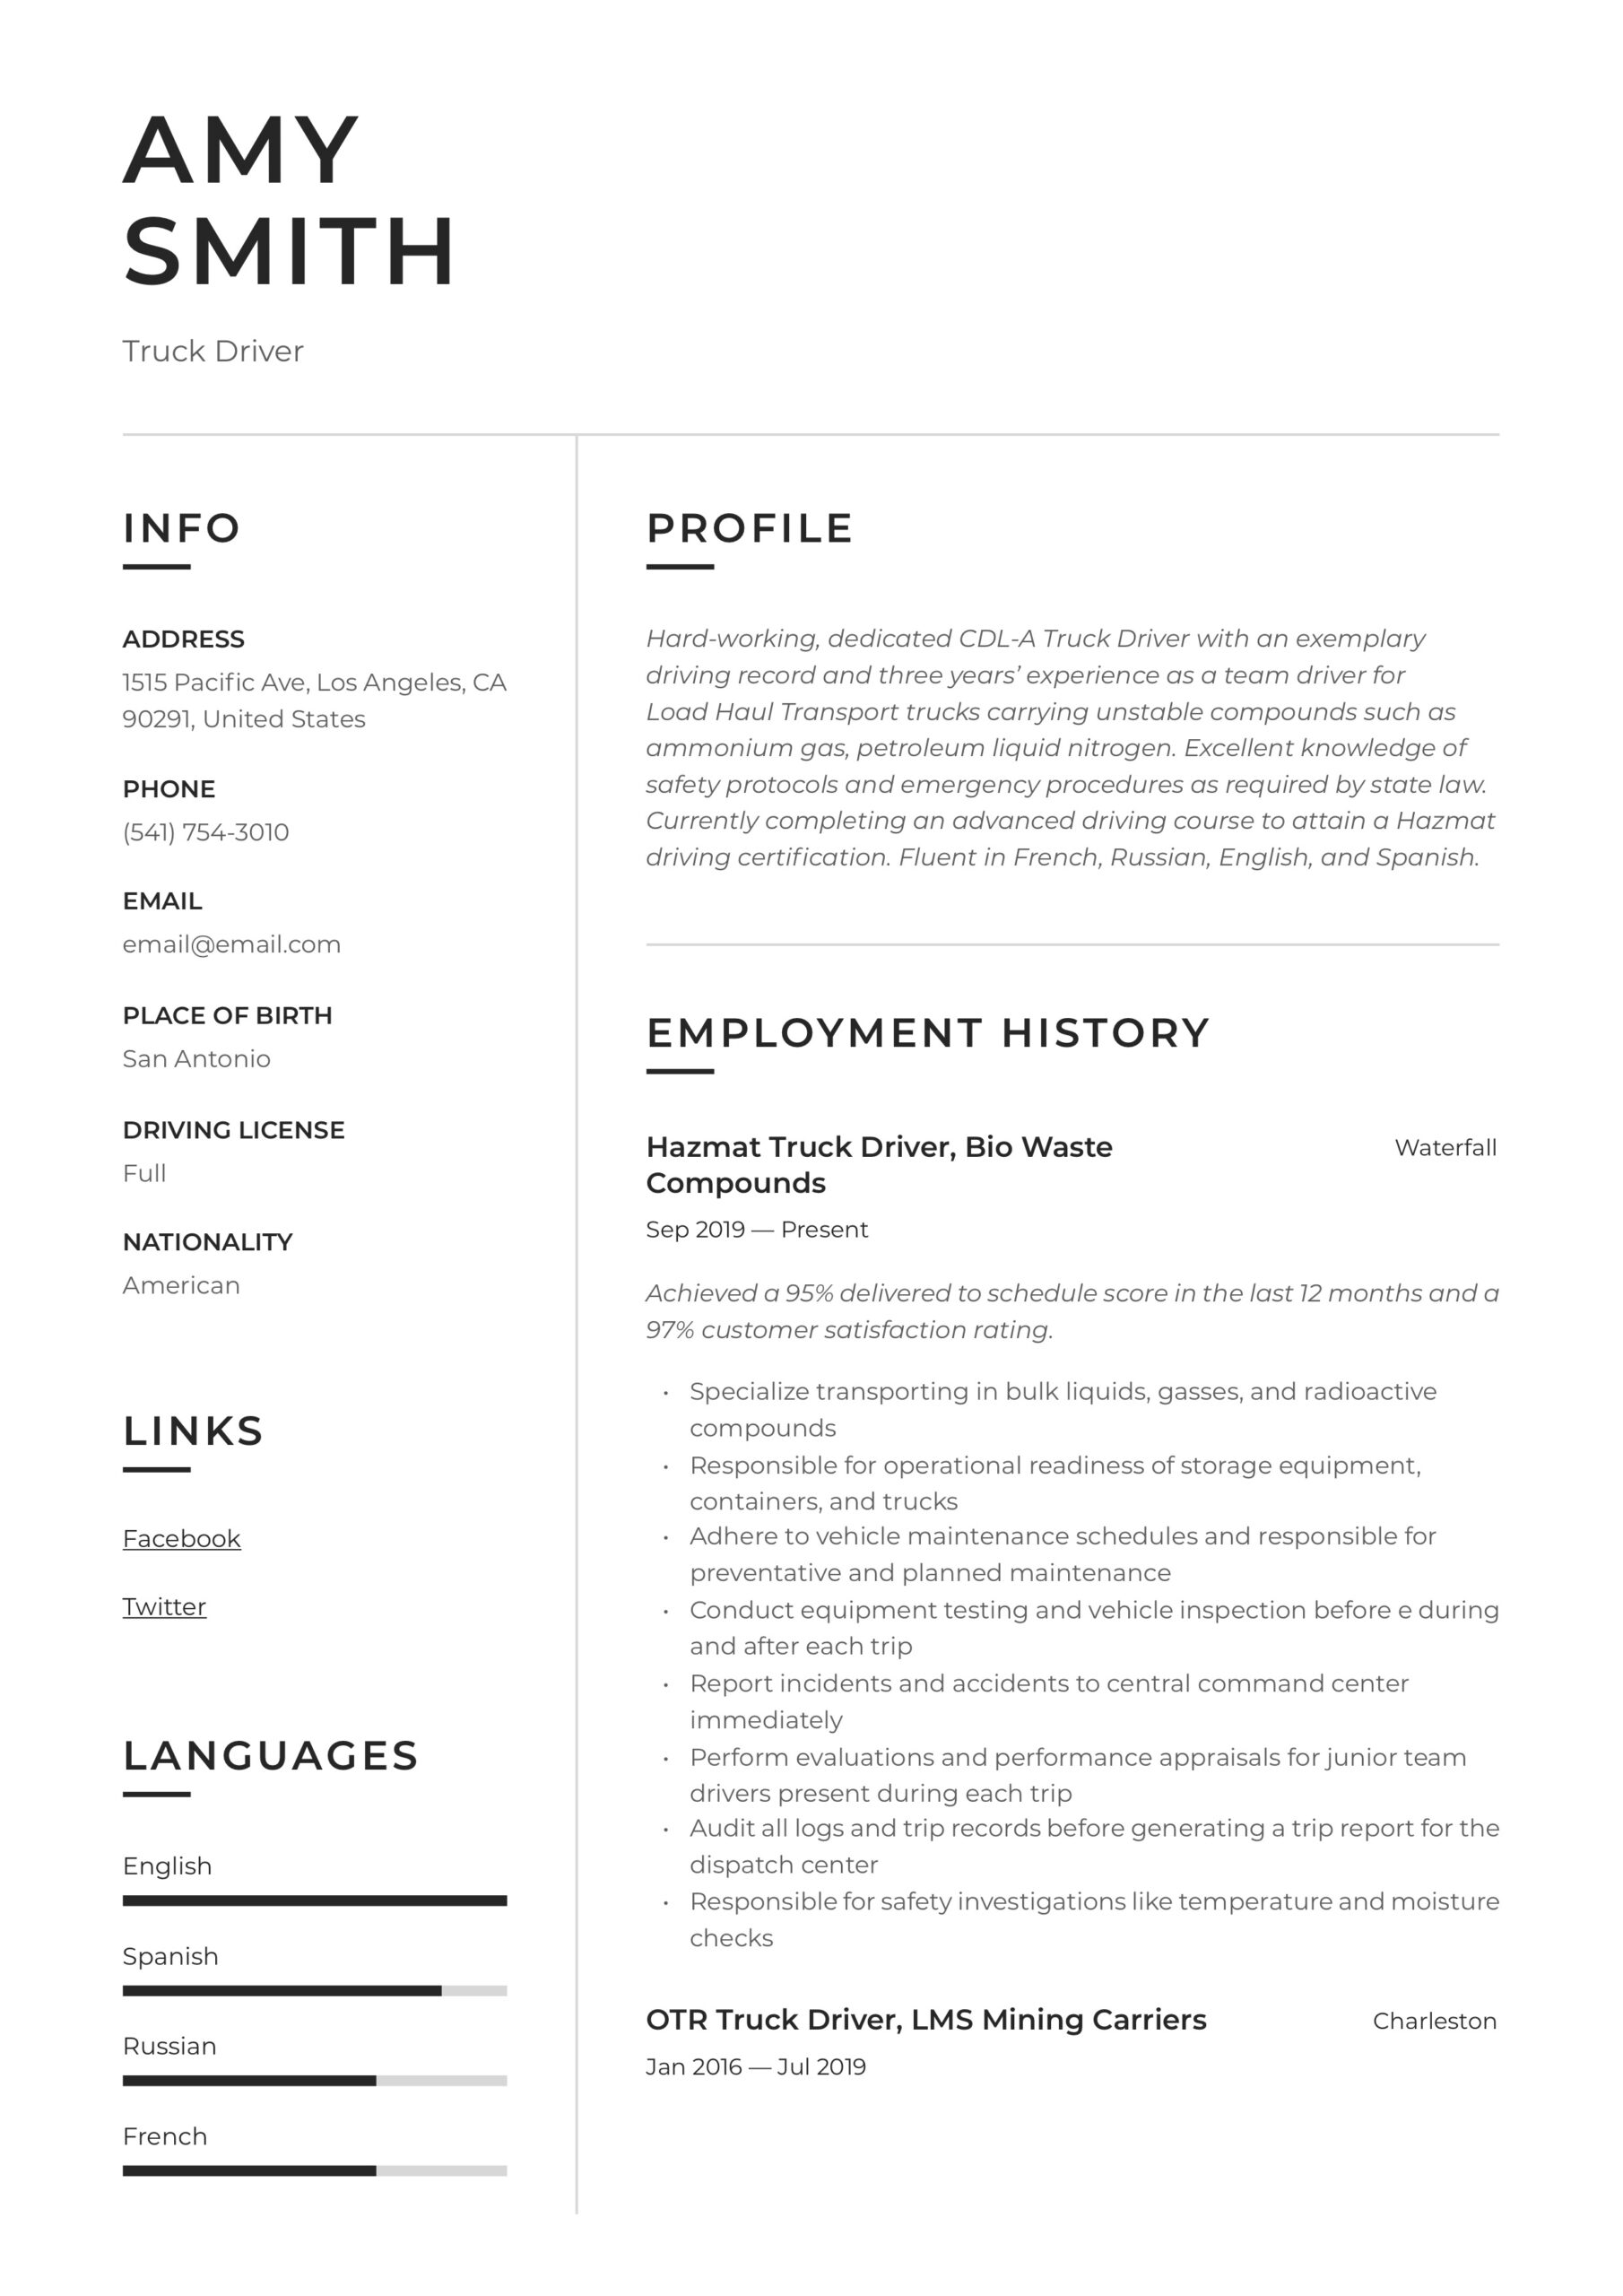 truck driver resume writing guide examples objective coo mailroom content editor sample Resume Truck Driver Resume Objective